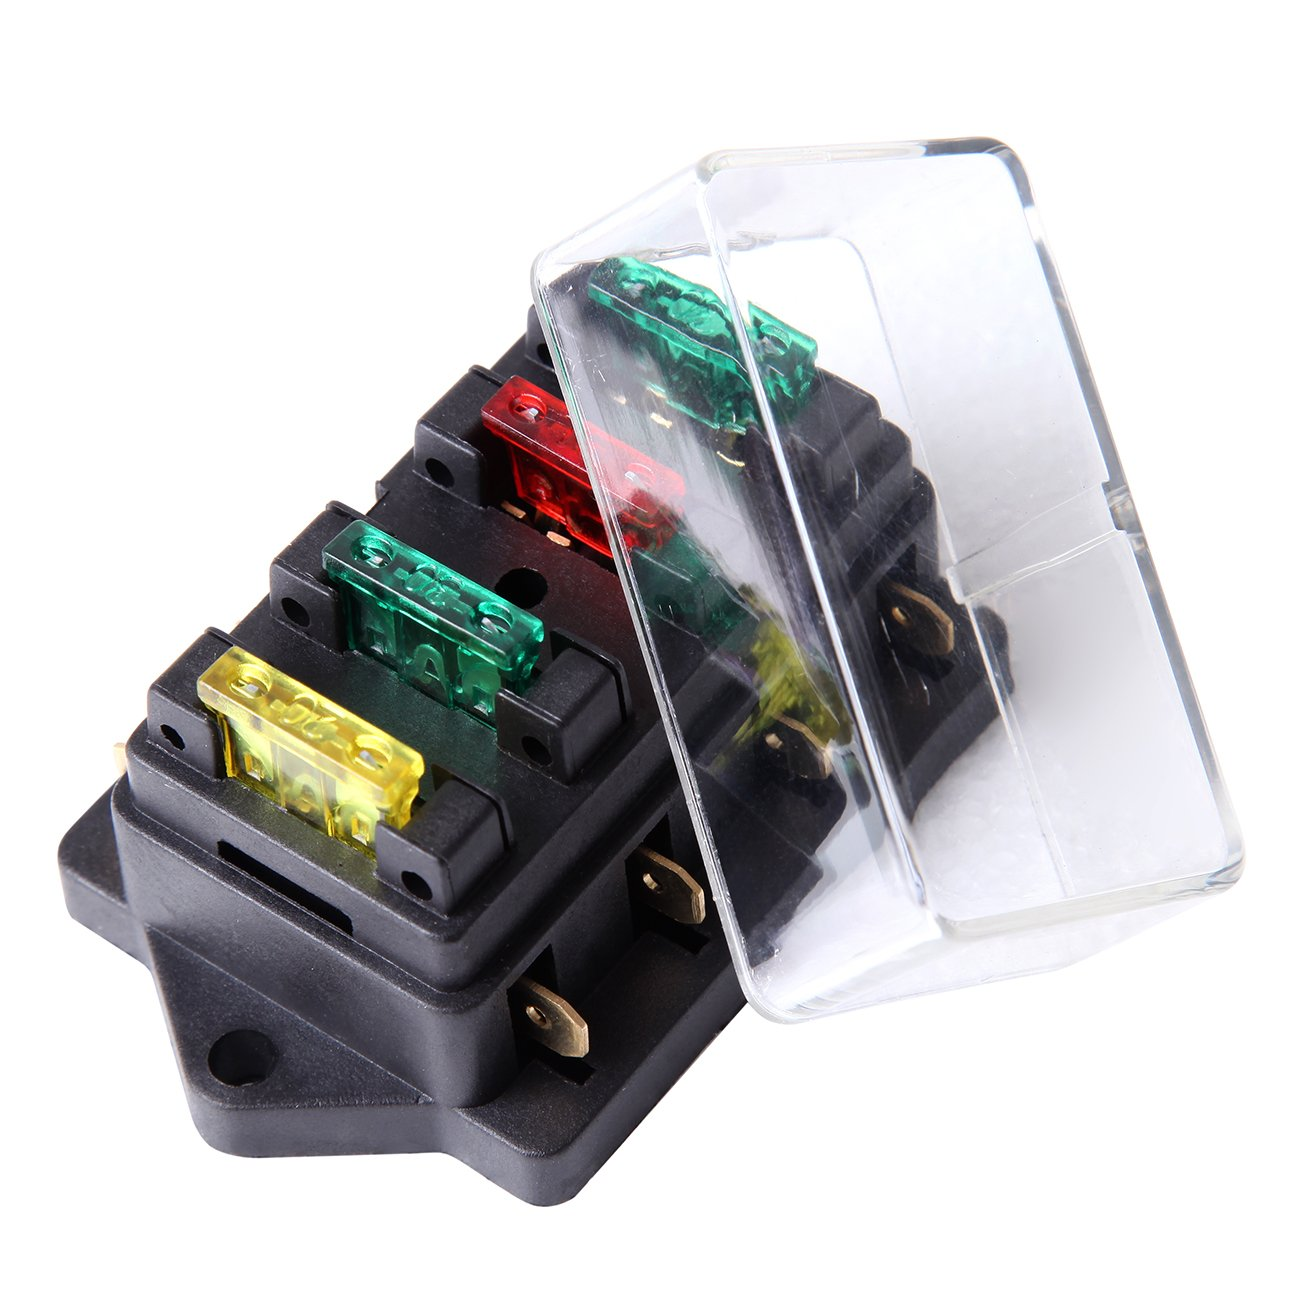 Iglobalbuy 12v 24v Fuse Holder Box Block 4 Way Circuit For Us Cover Car Truck